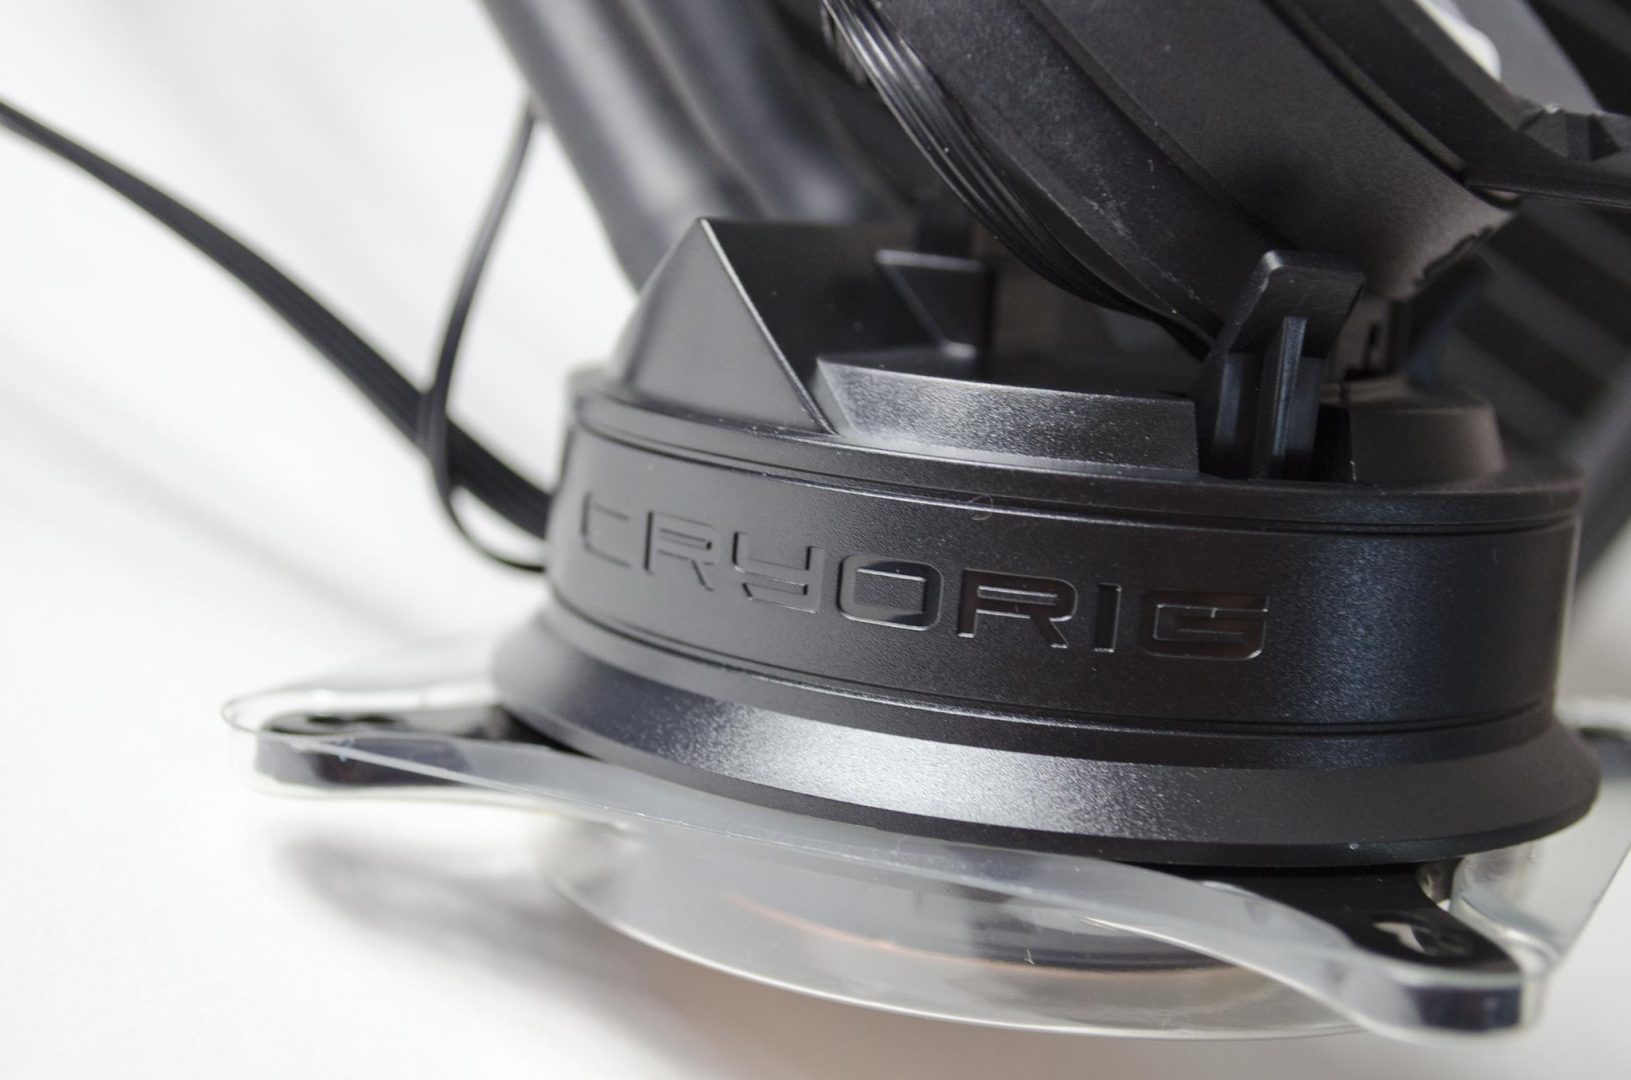 Cryorig A40 240MM Ultimate Hybrid AIO CPU Cooler Review